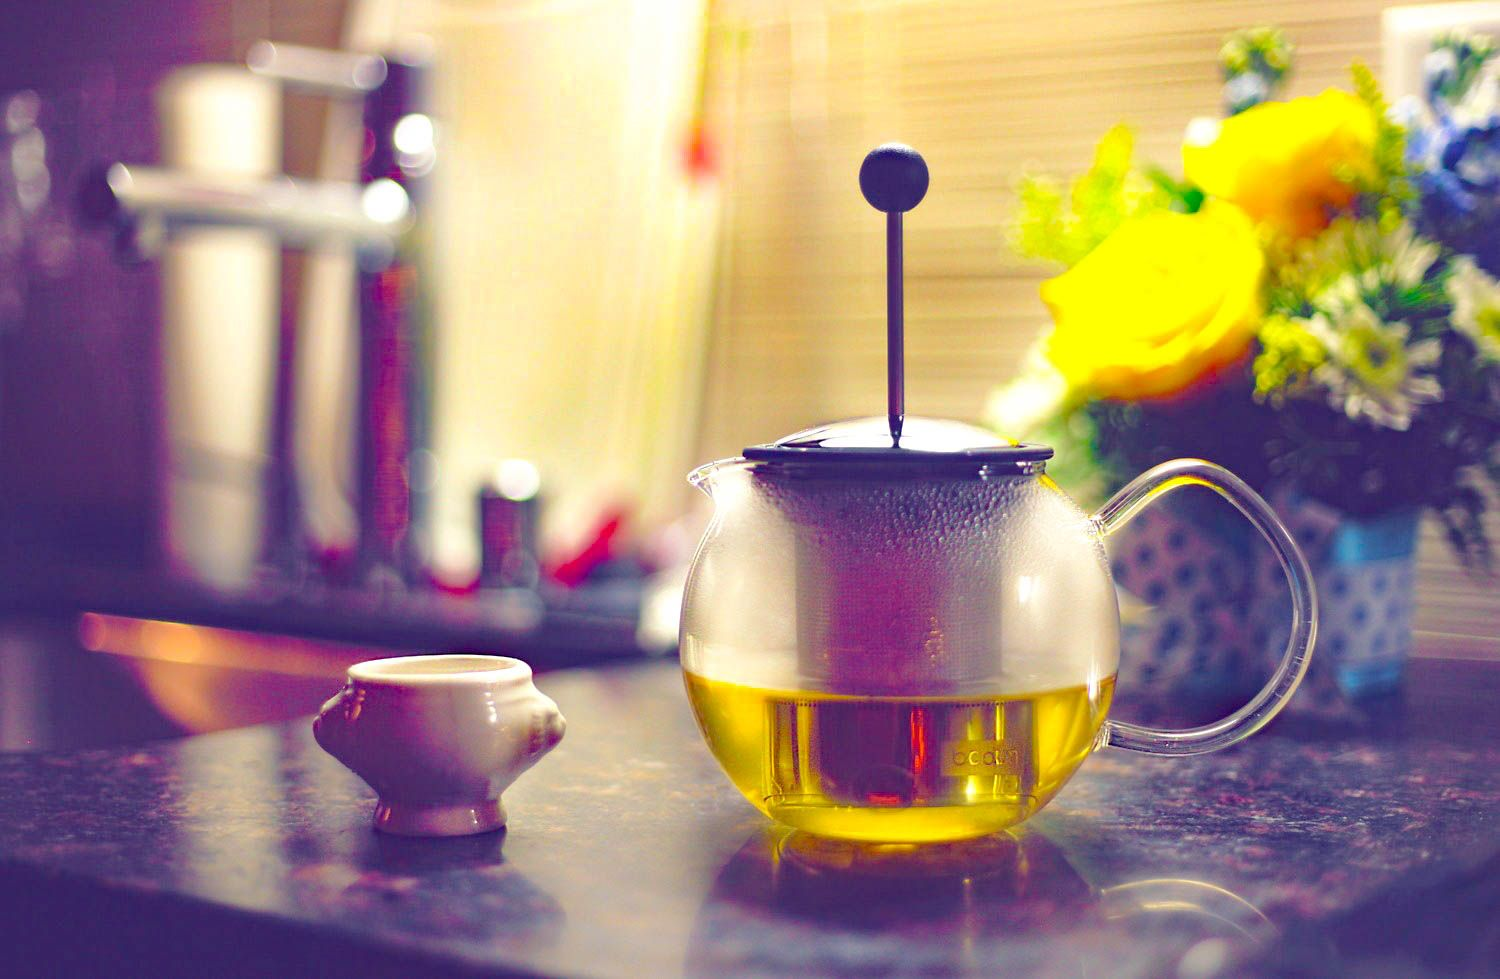 A glass teapot and a teacup on a wooden desk